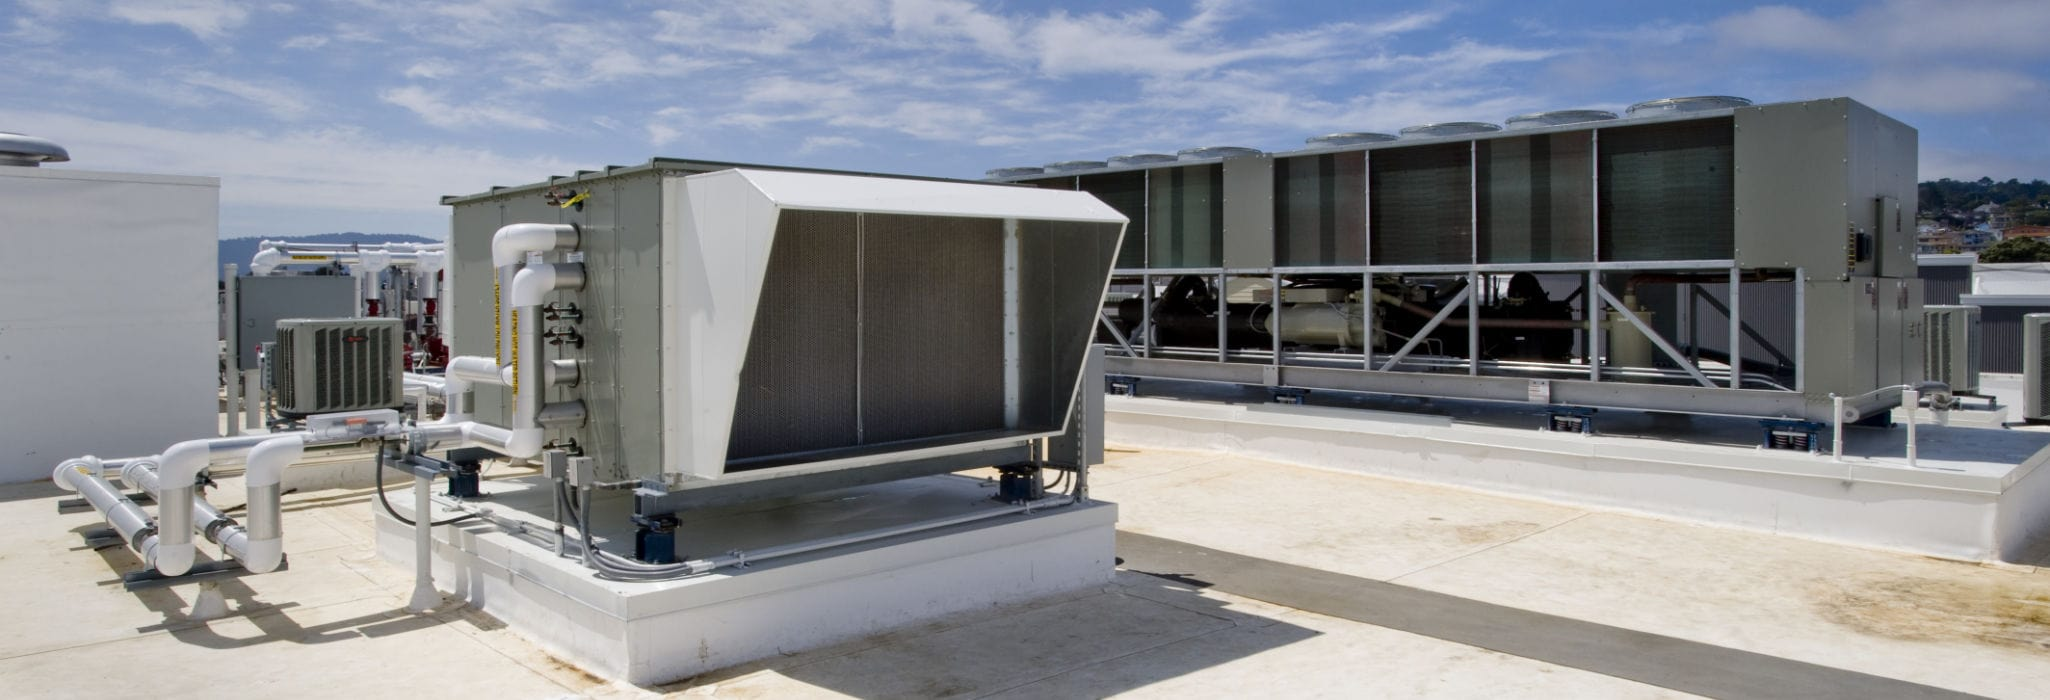 Large rooftop HVAC system.